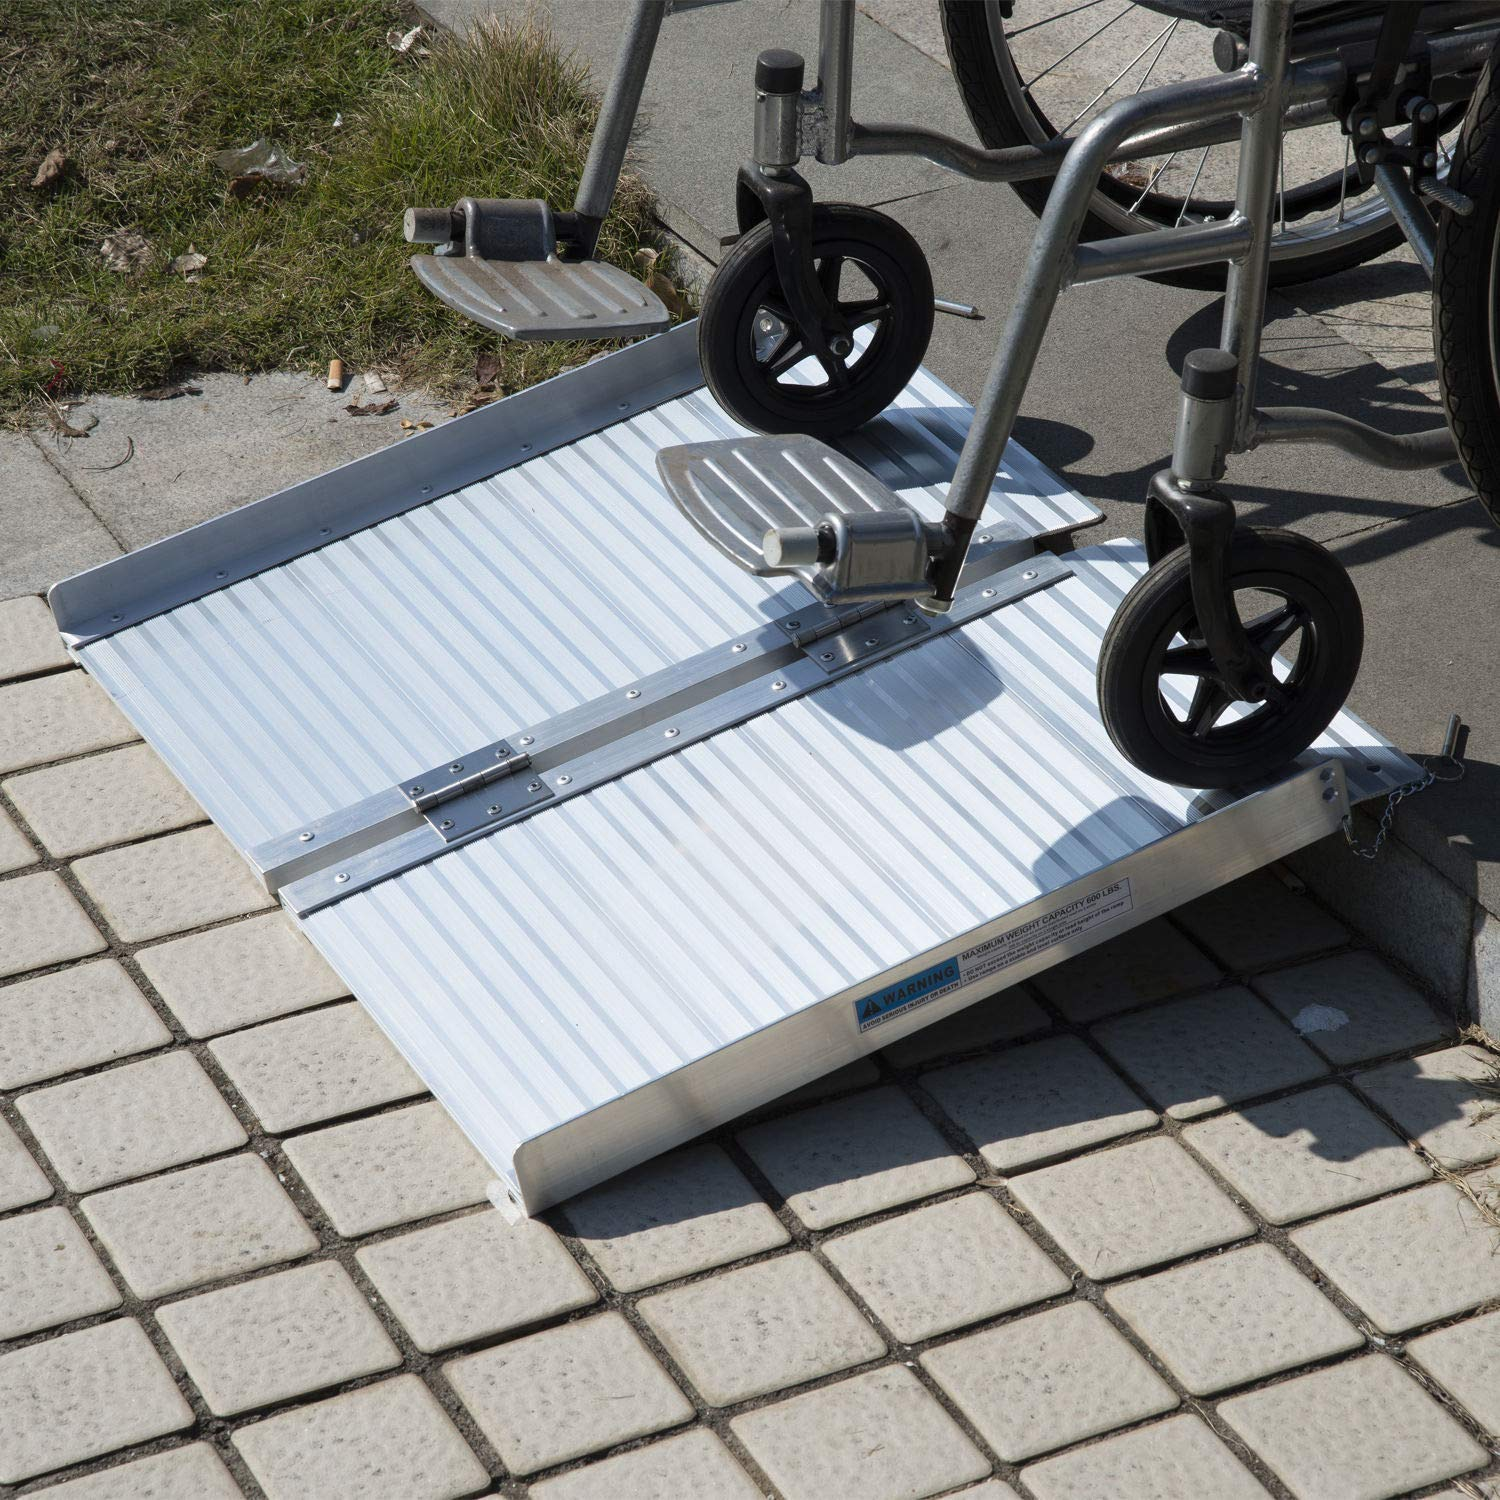 Access Ramps Portable Mobility Loading Wheelchair Threshold Ramp Handicap Folding by Caraya